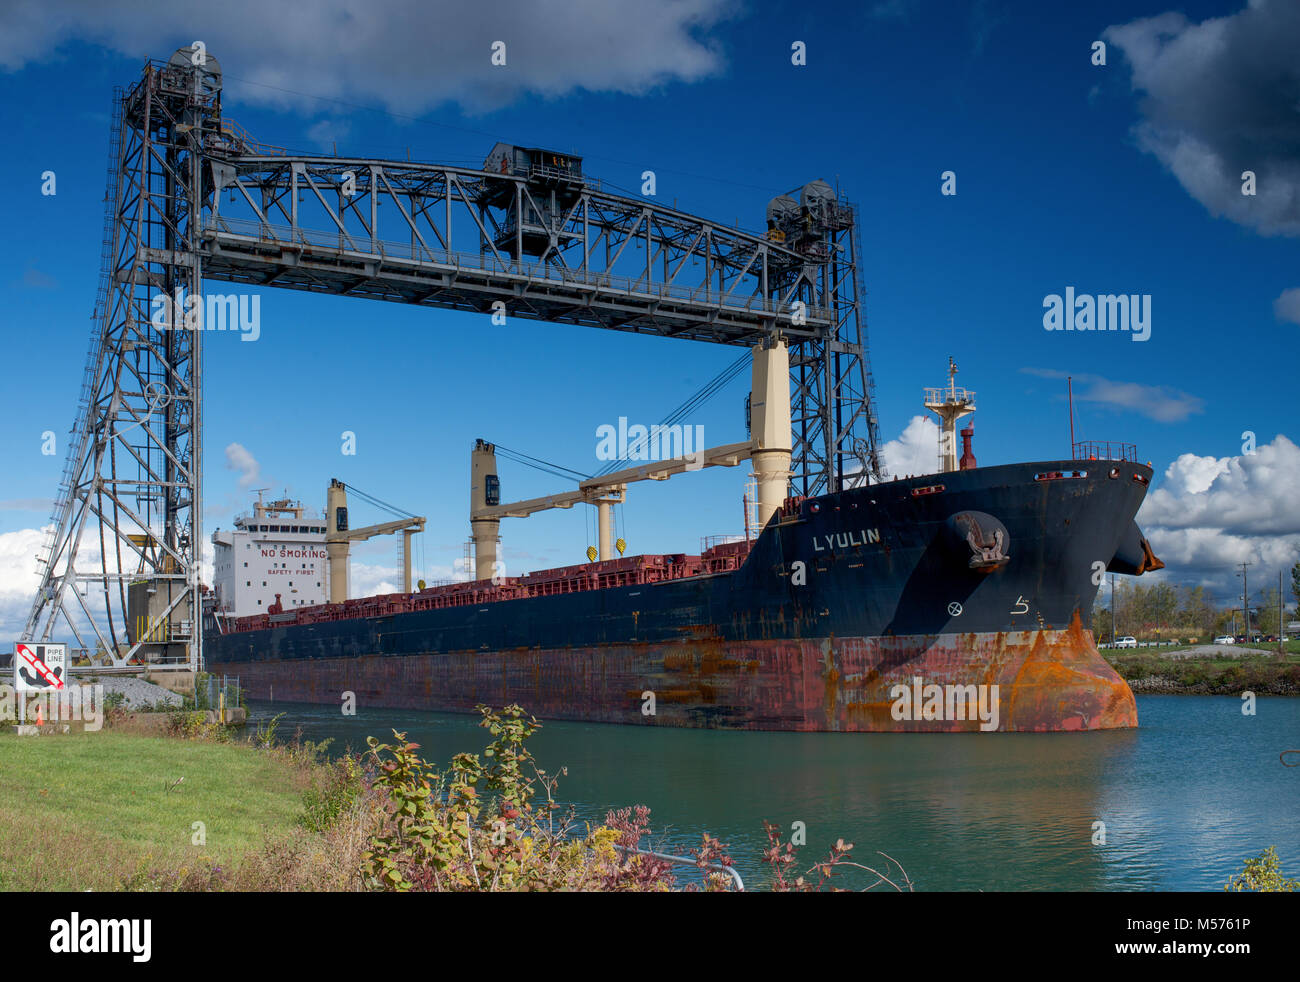 The Lyulin bulk carrier passing through the Welland Canal - Stock Image